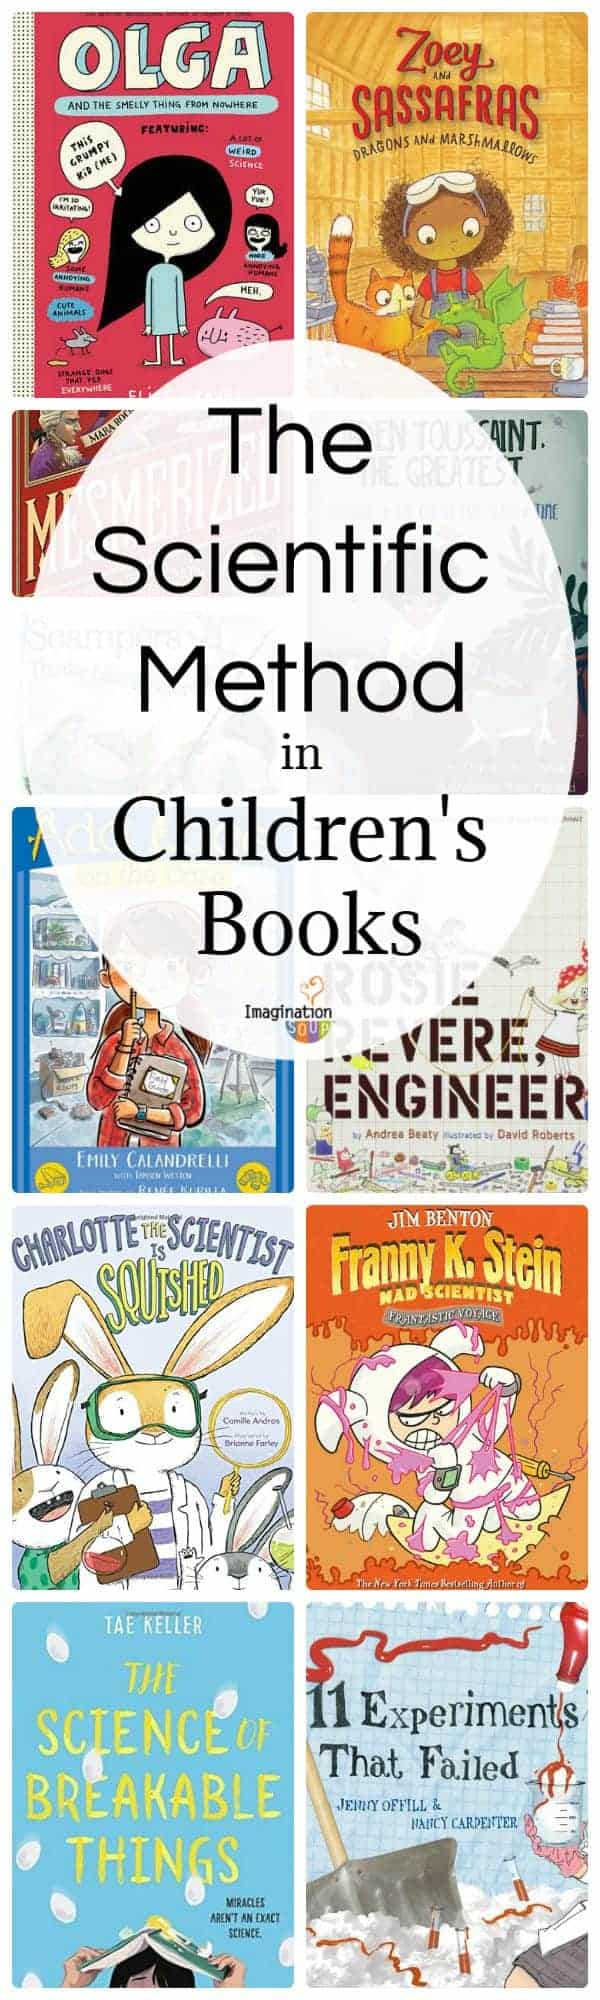 the scientific method in picture and chapter children's books